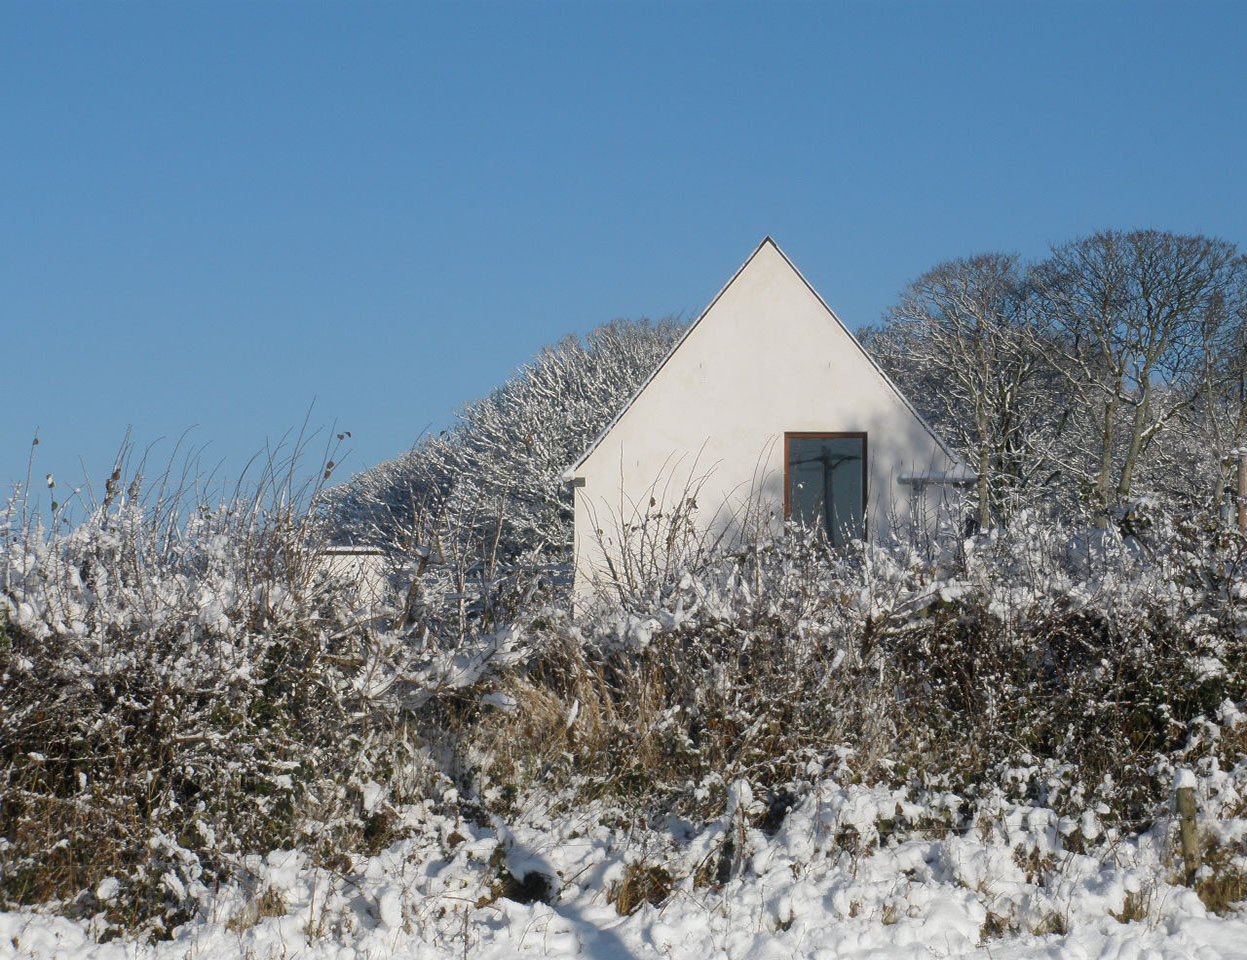 A high-function family dwelling with a low impact on the site and locality.